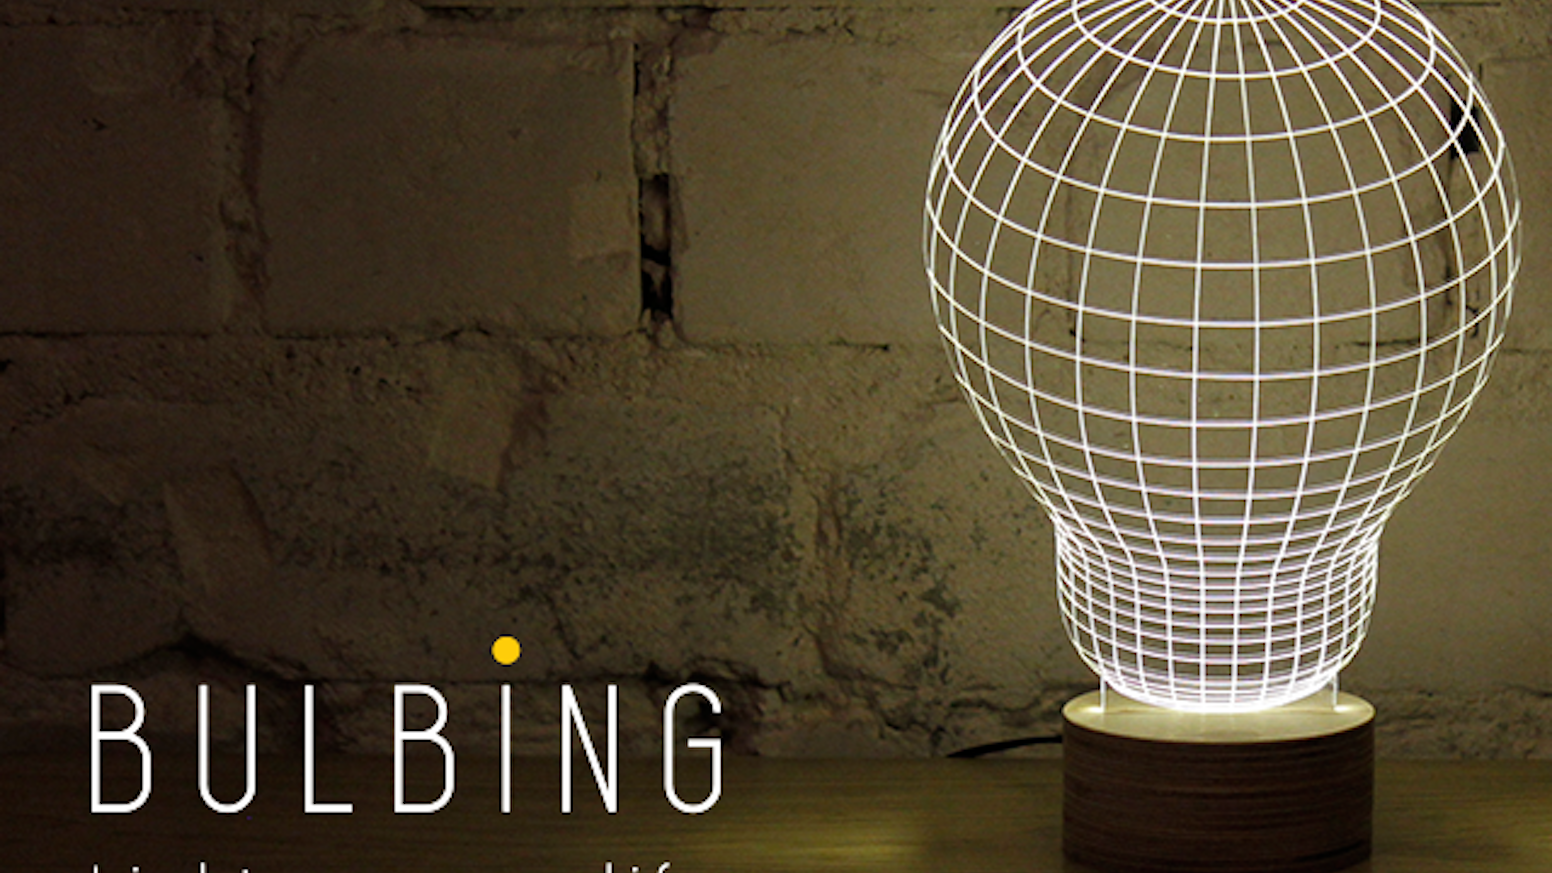 Bulbing a magical lamp design light up your life by studio cheha bulbing a magical lamp design light up your life keyboard keysfo Image collections